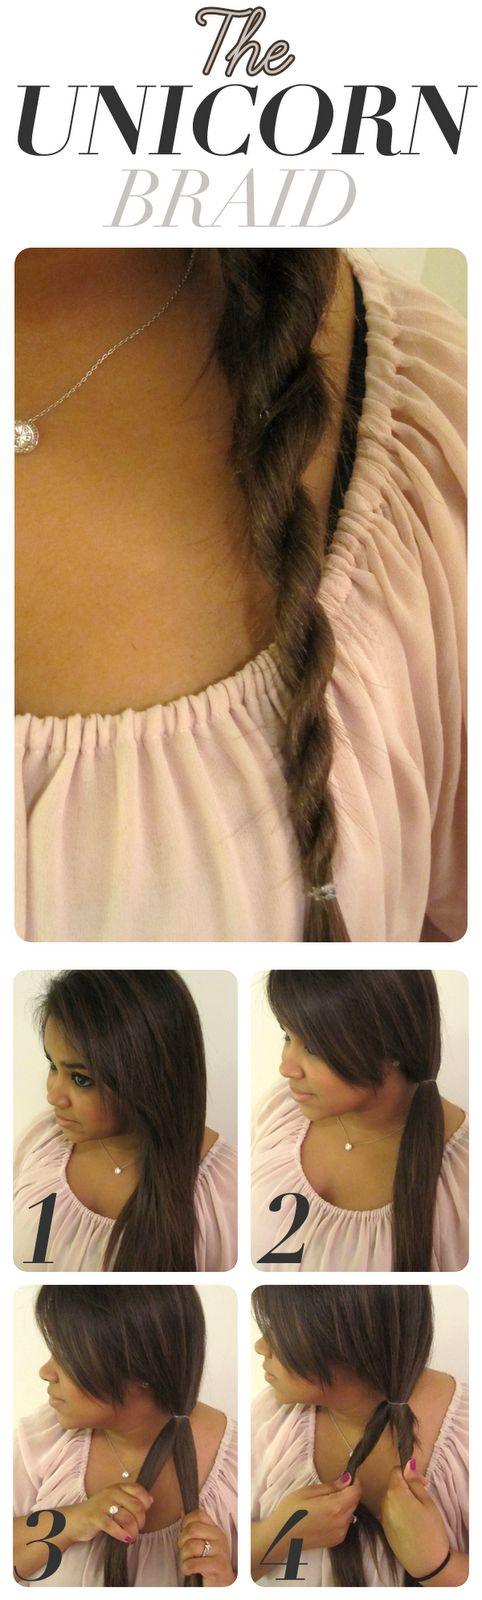 b for bel: Awesome Hair: The Unicorn Braid! Pretty!